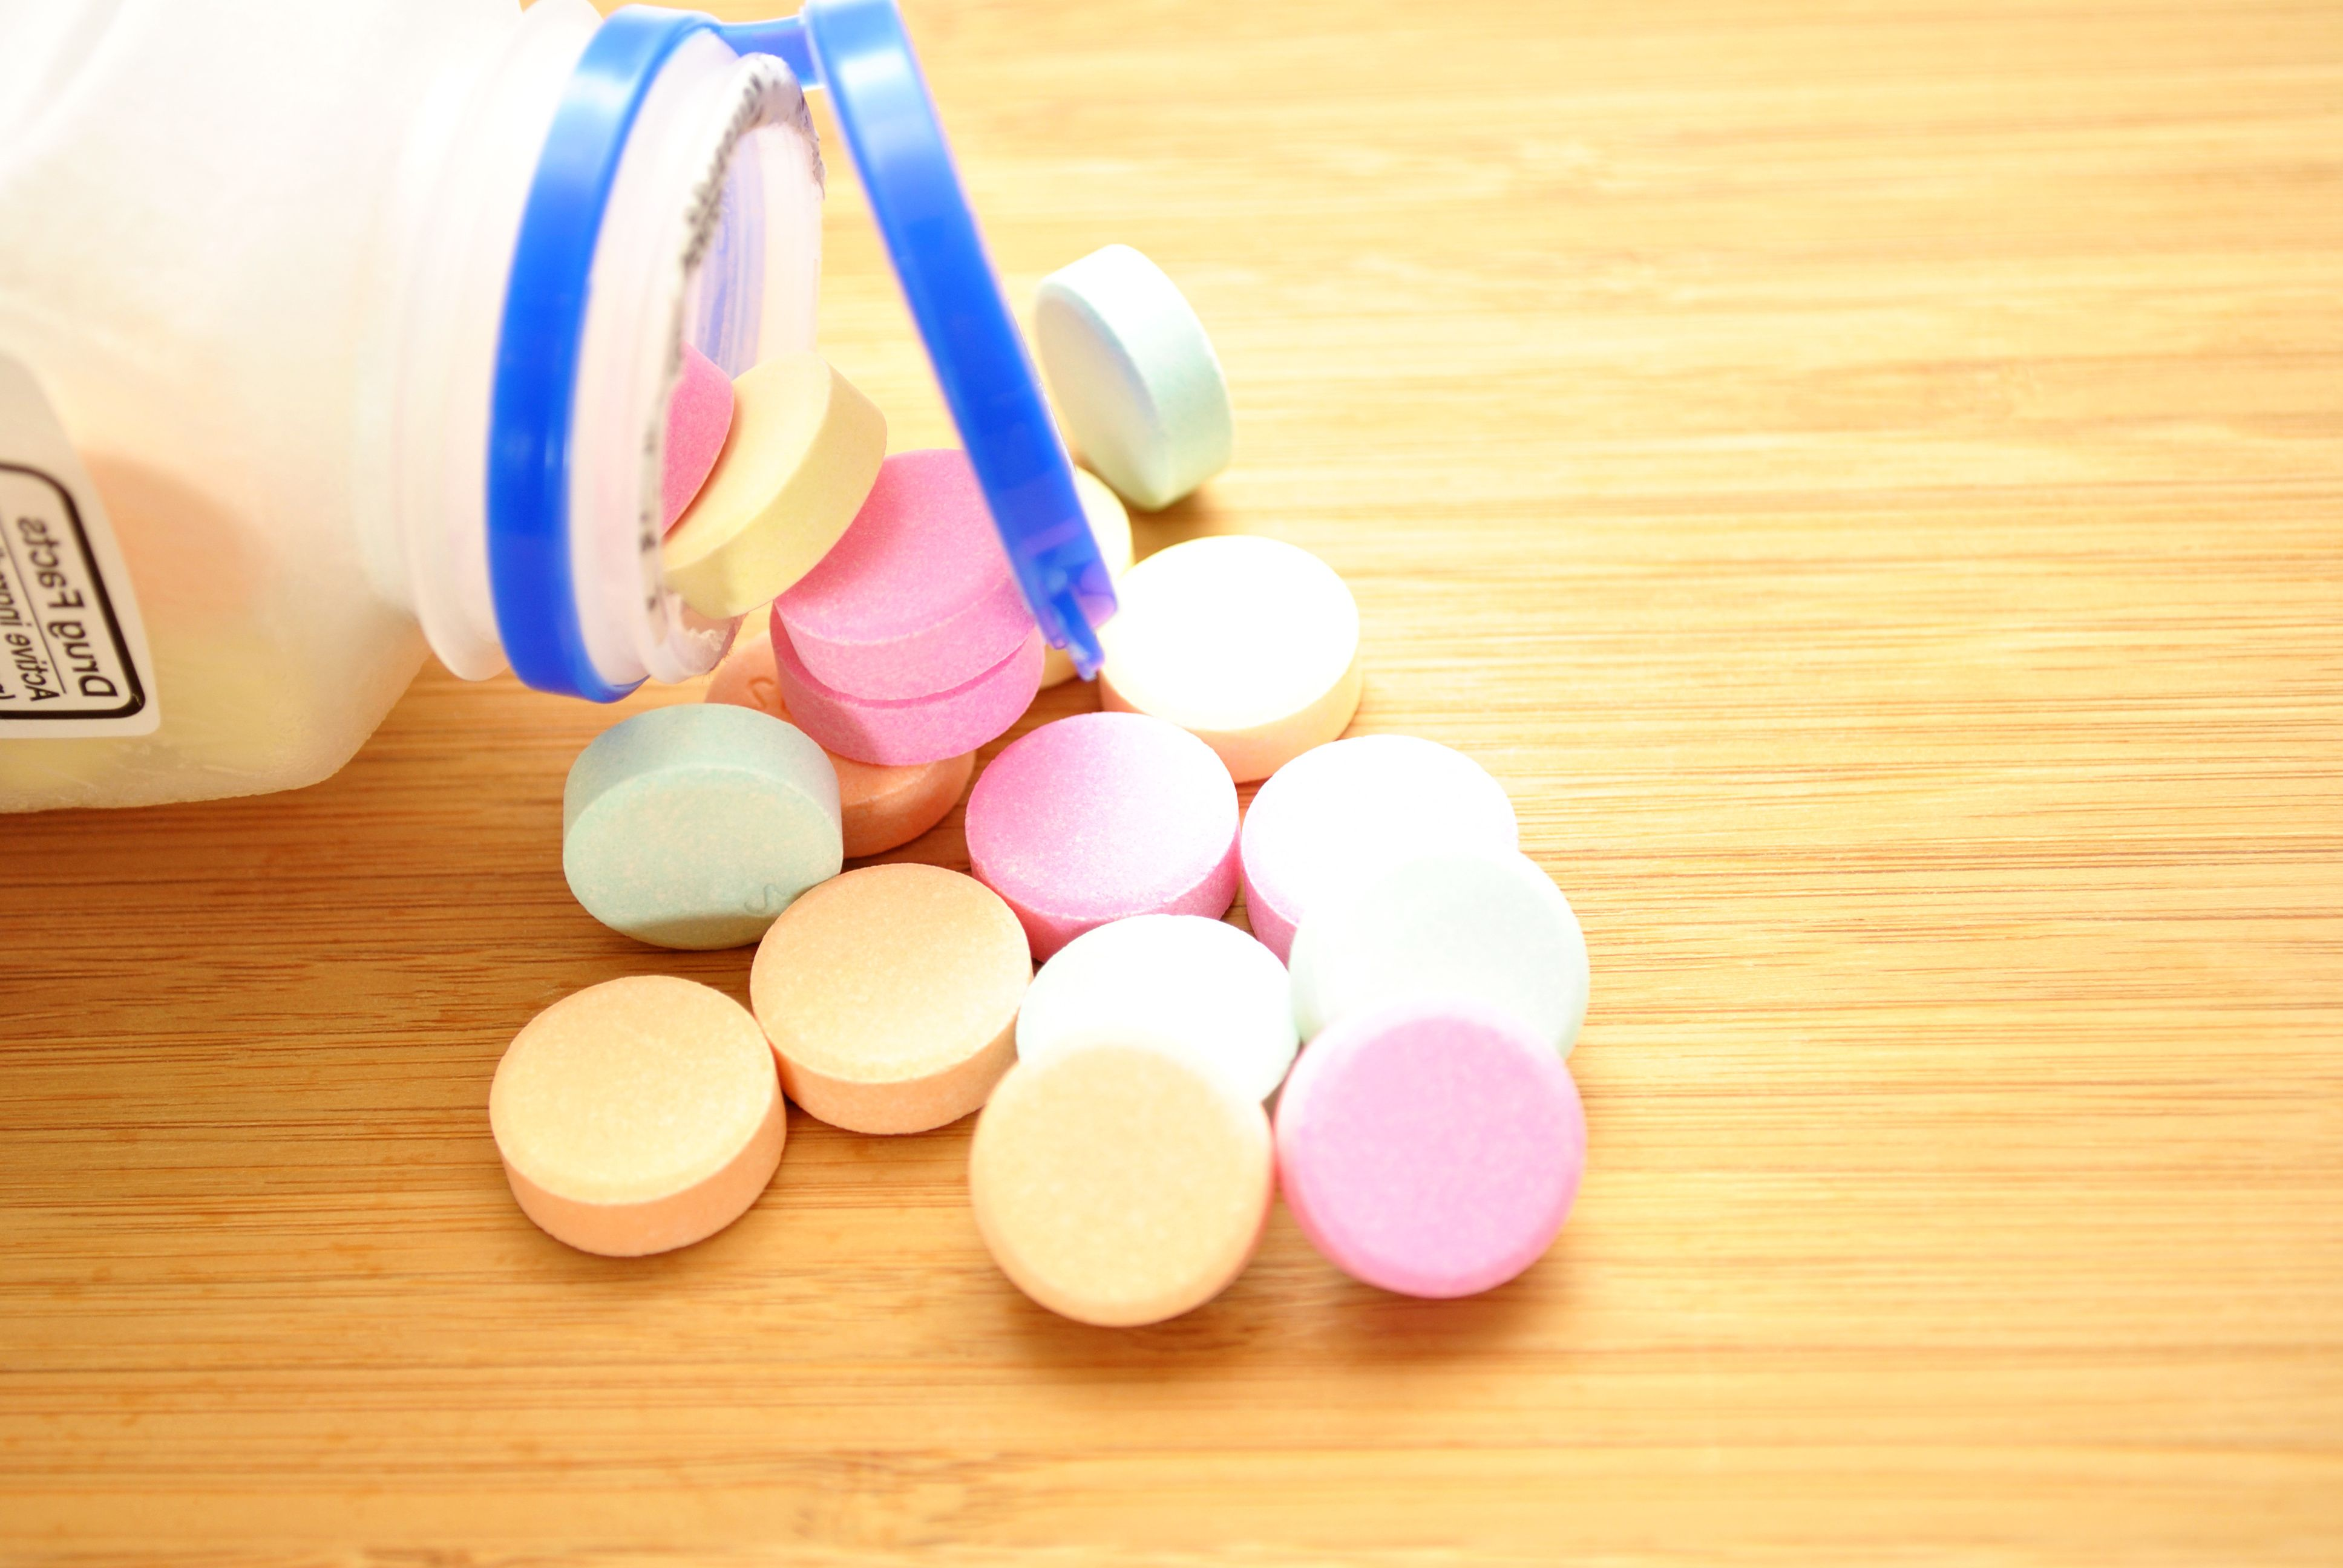 antacids these natural reme s can help heartburn